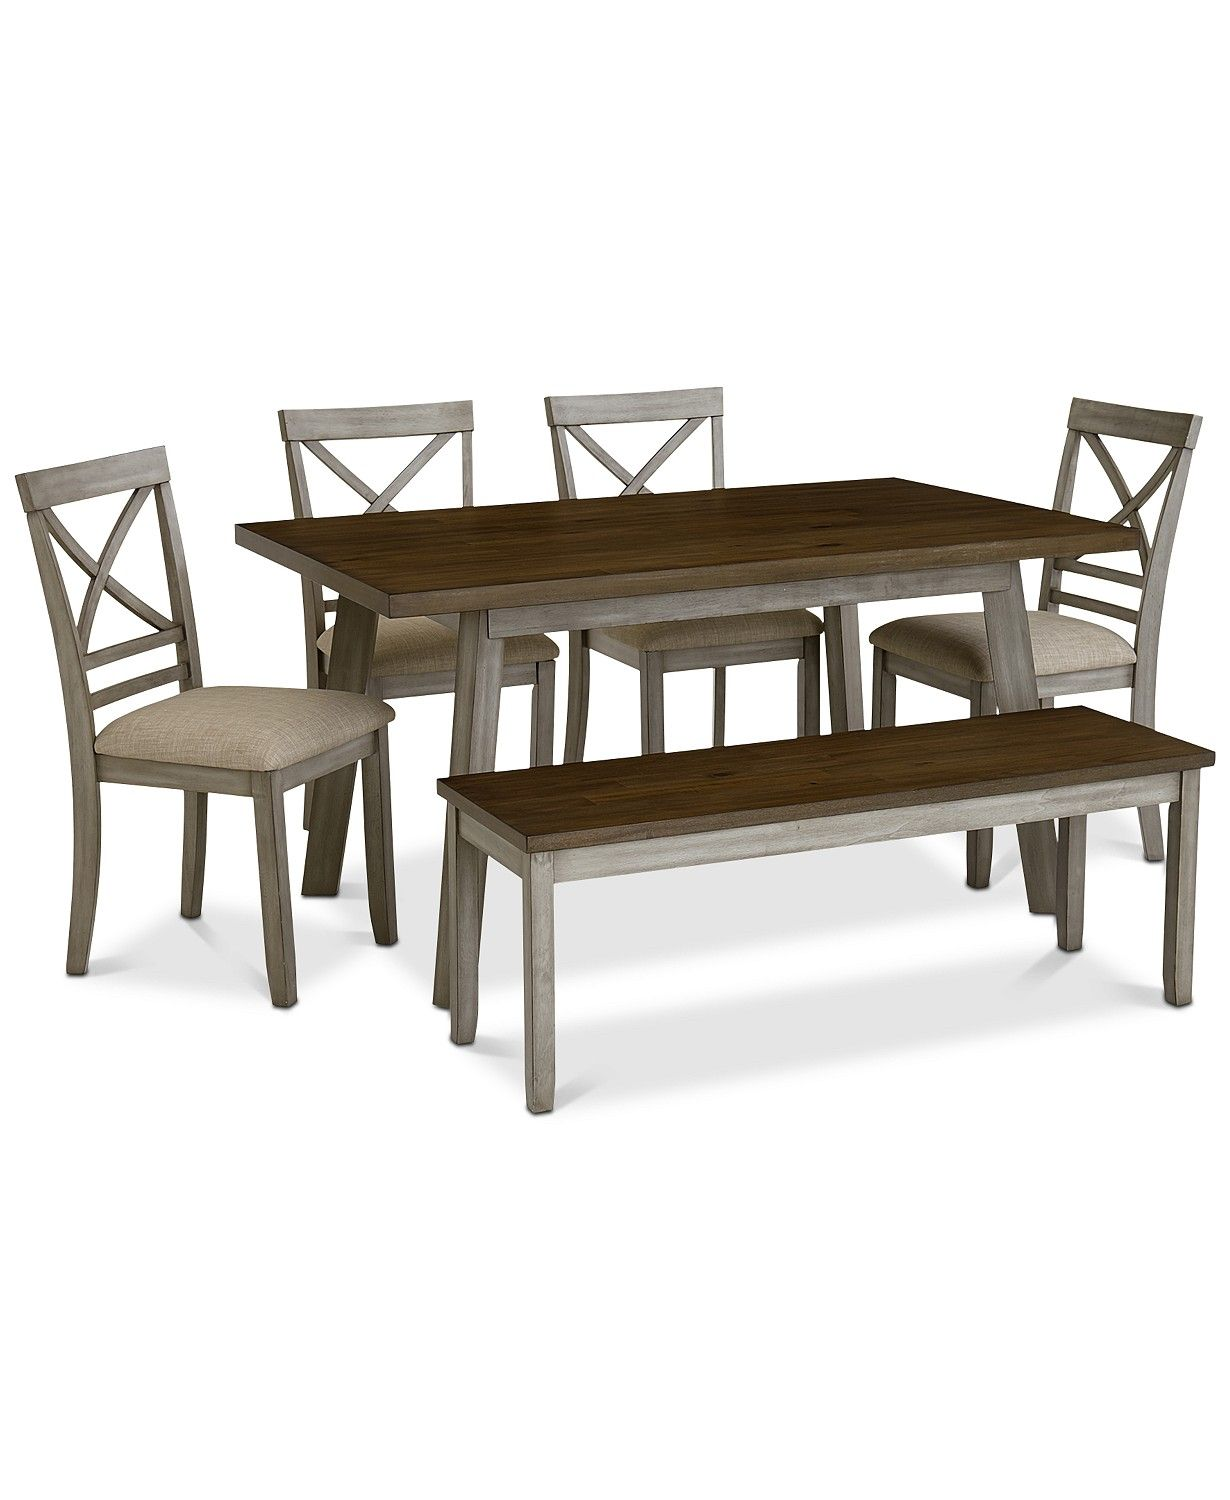 Furniture Fairhaven Dining Furniture 6 Pc Set Table 4